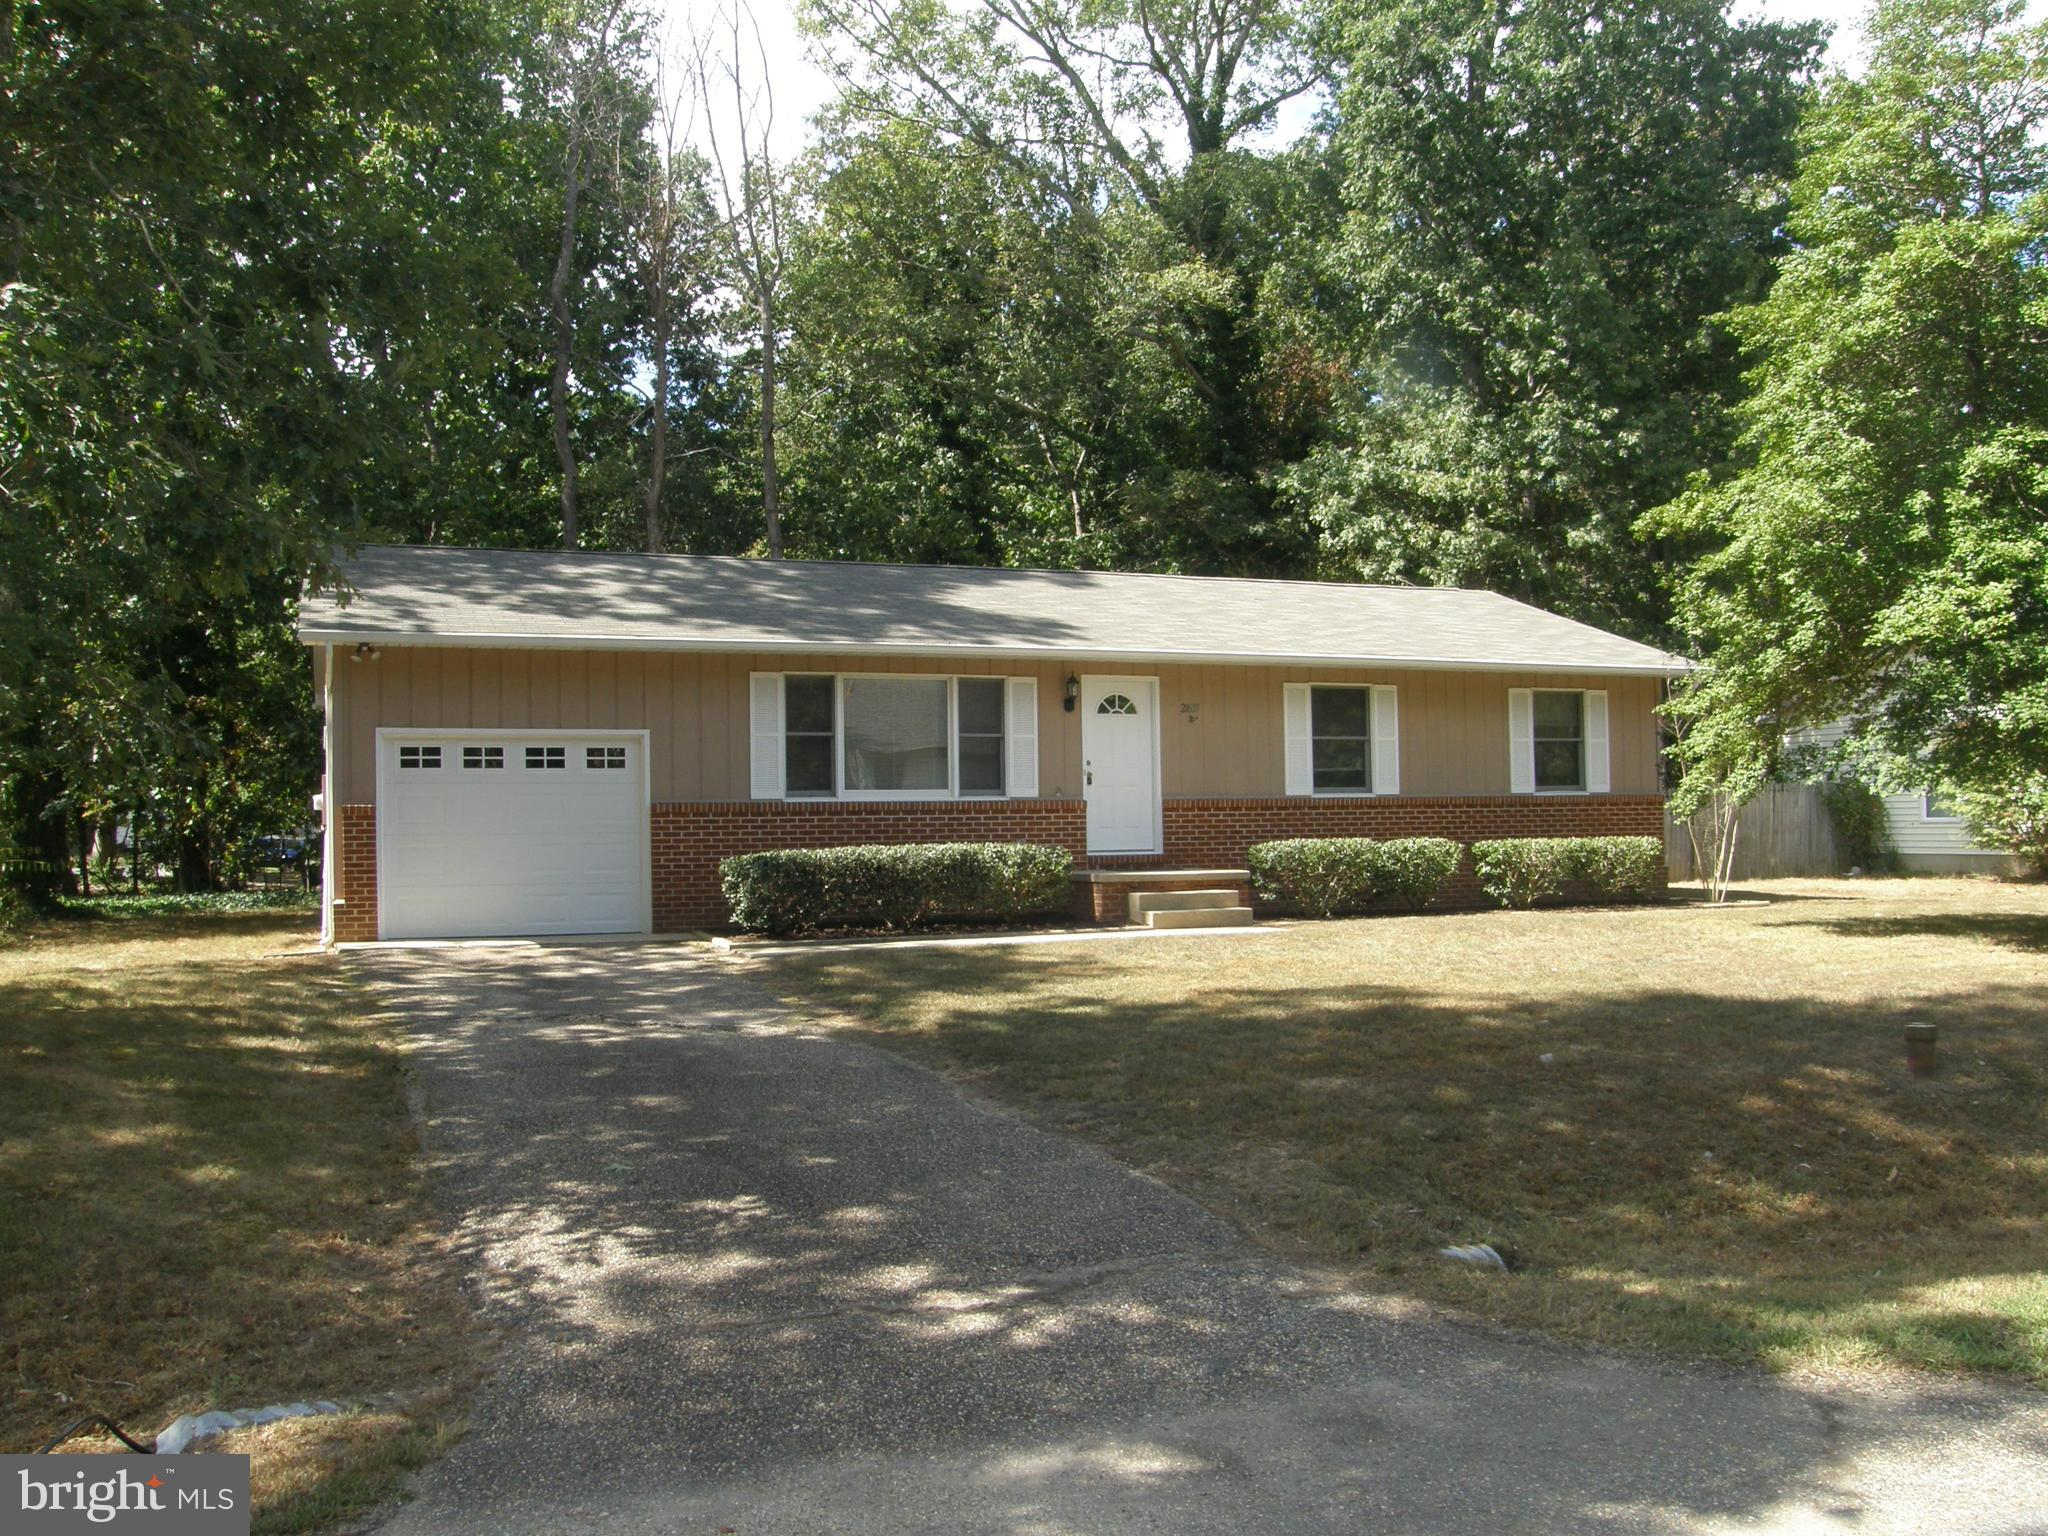 Easy Street one level living! This home has fresh paint, recent carpet, roof, landscaping, interior